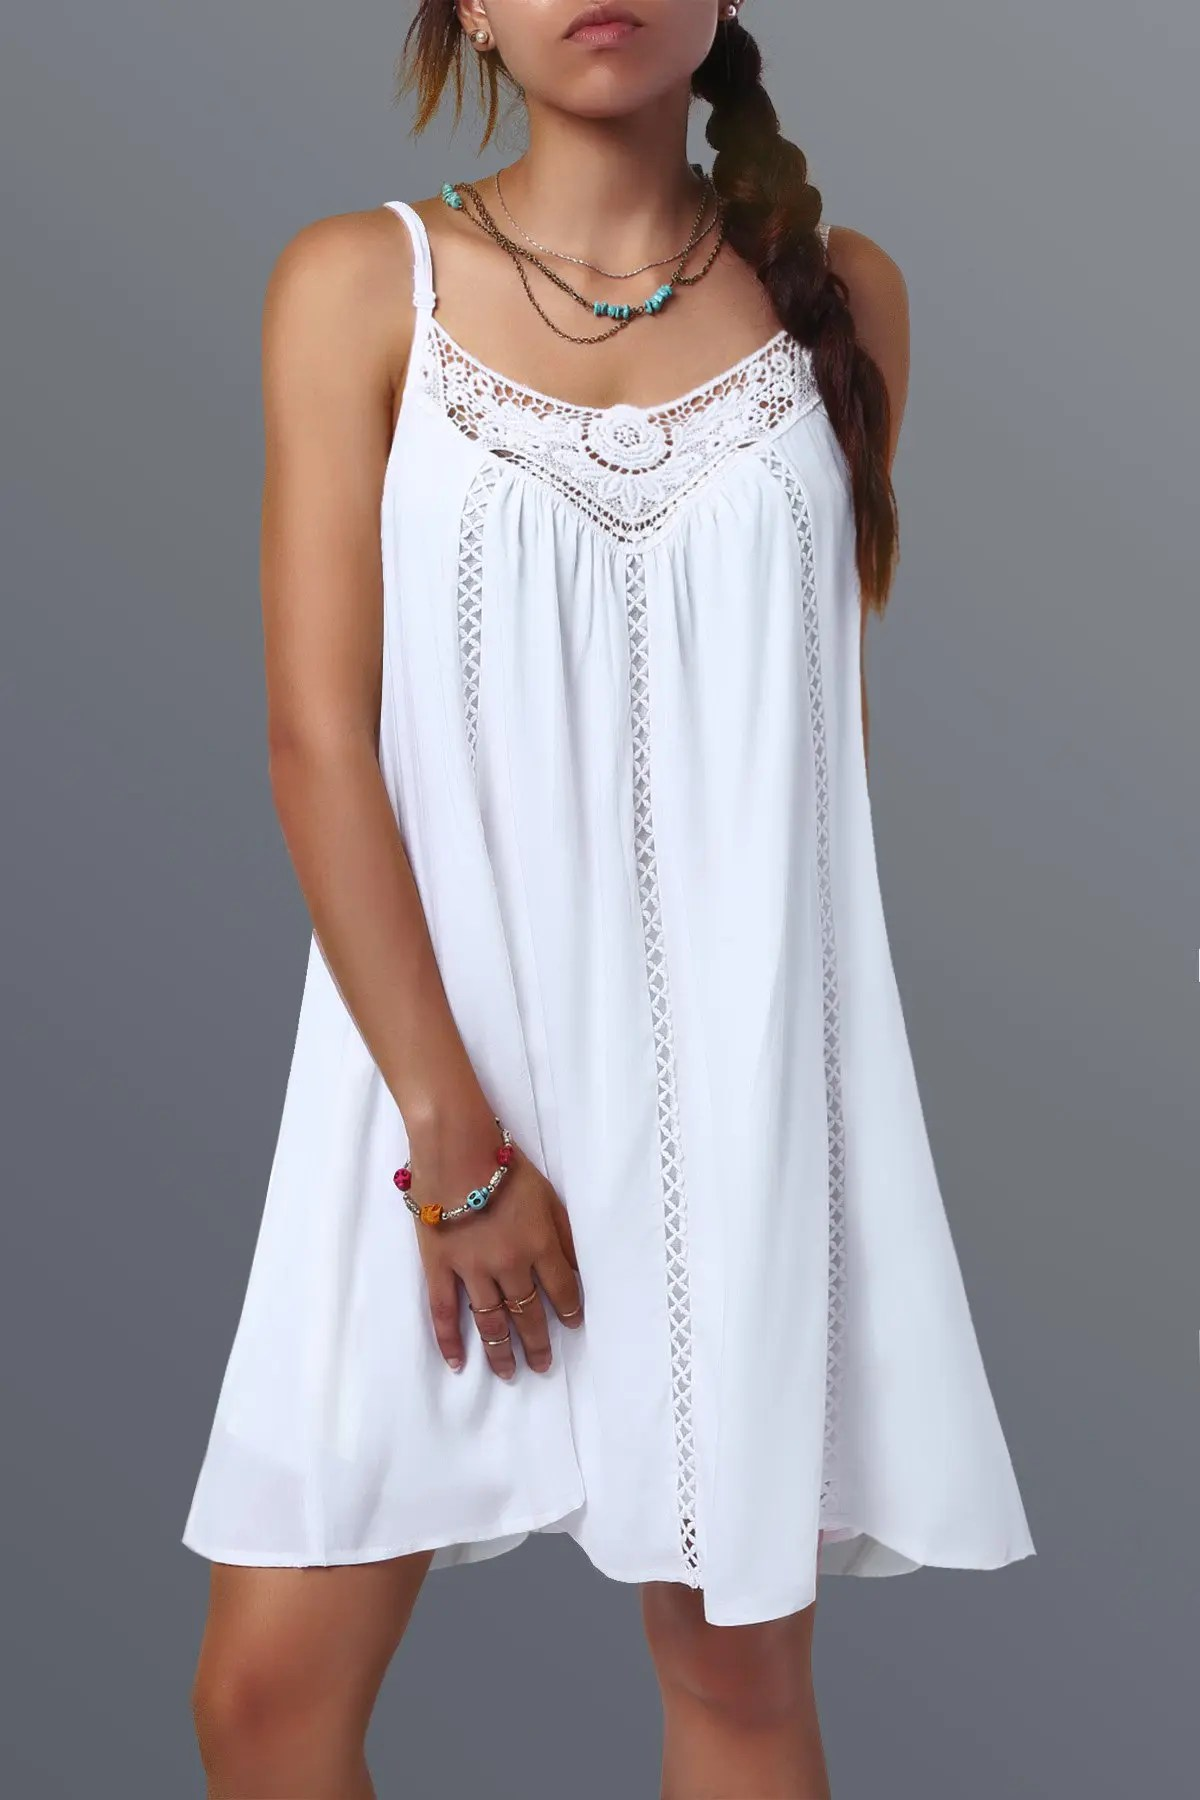 52 OFF Spaghetti Strap Lace Splicing Sleeveless Shift Babydoll Dress  Rosegal